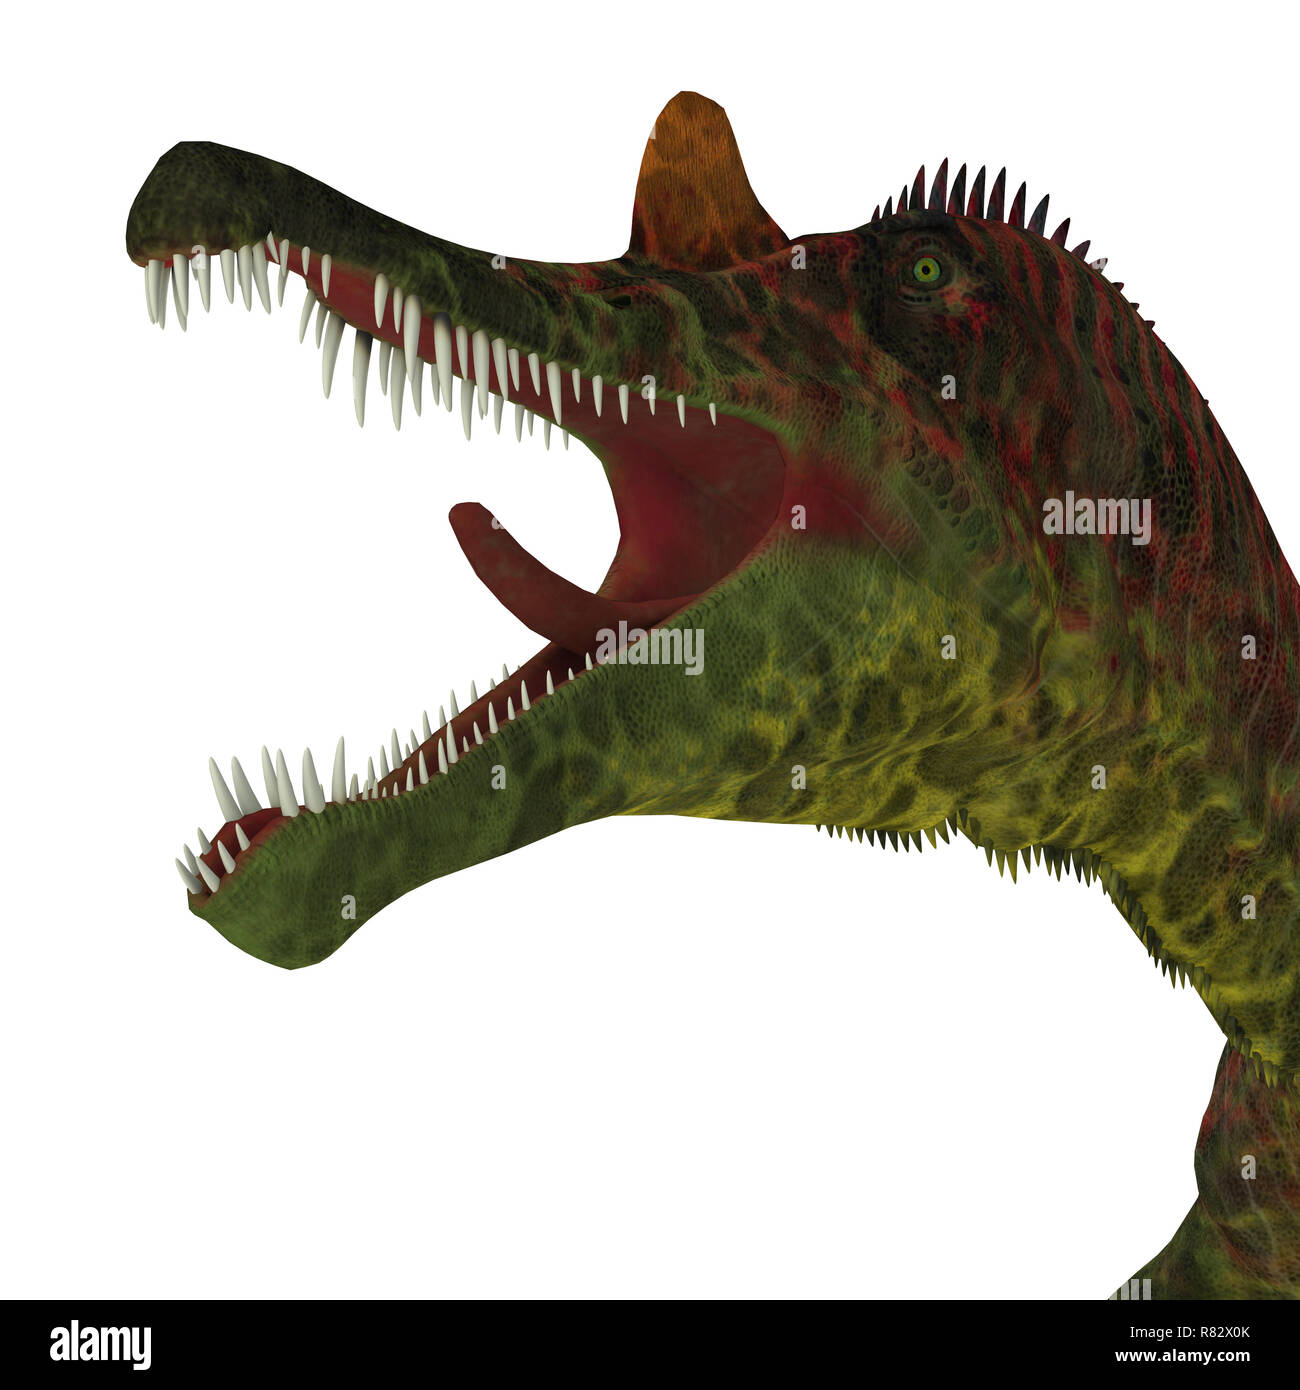 Ichthyovenator Dinosaur Jaws - Ichthyovenator was a carnivorous theropod dinosaur that lived in Laos, Asia during the Cretaceous Period. - Stock Image